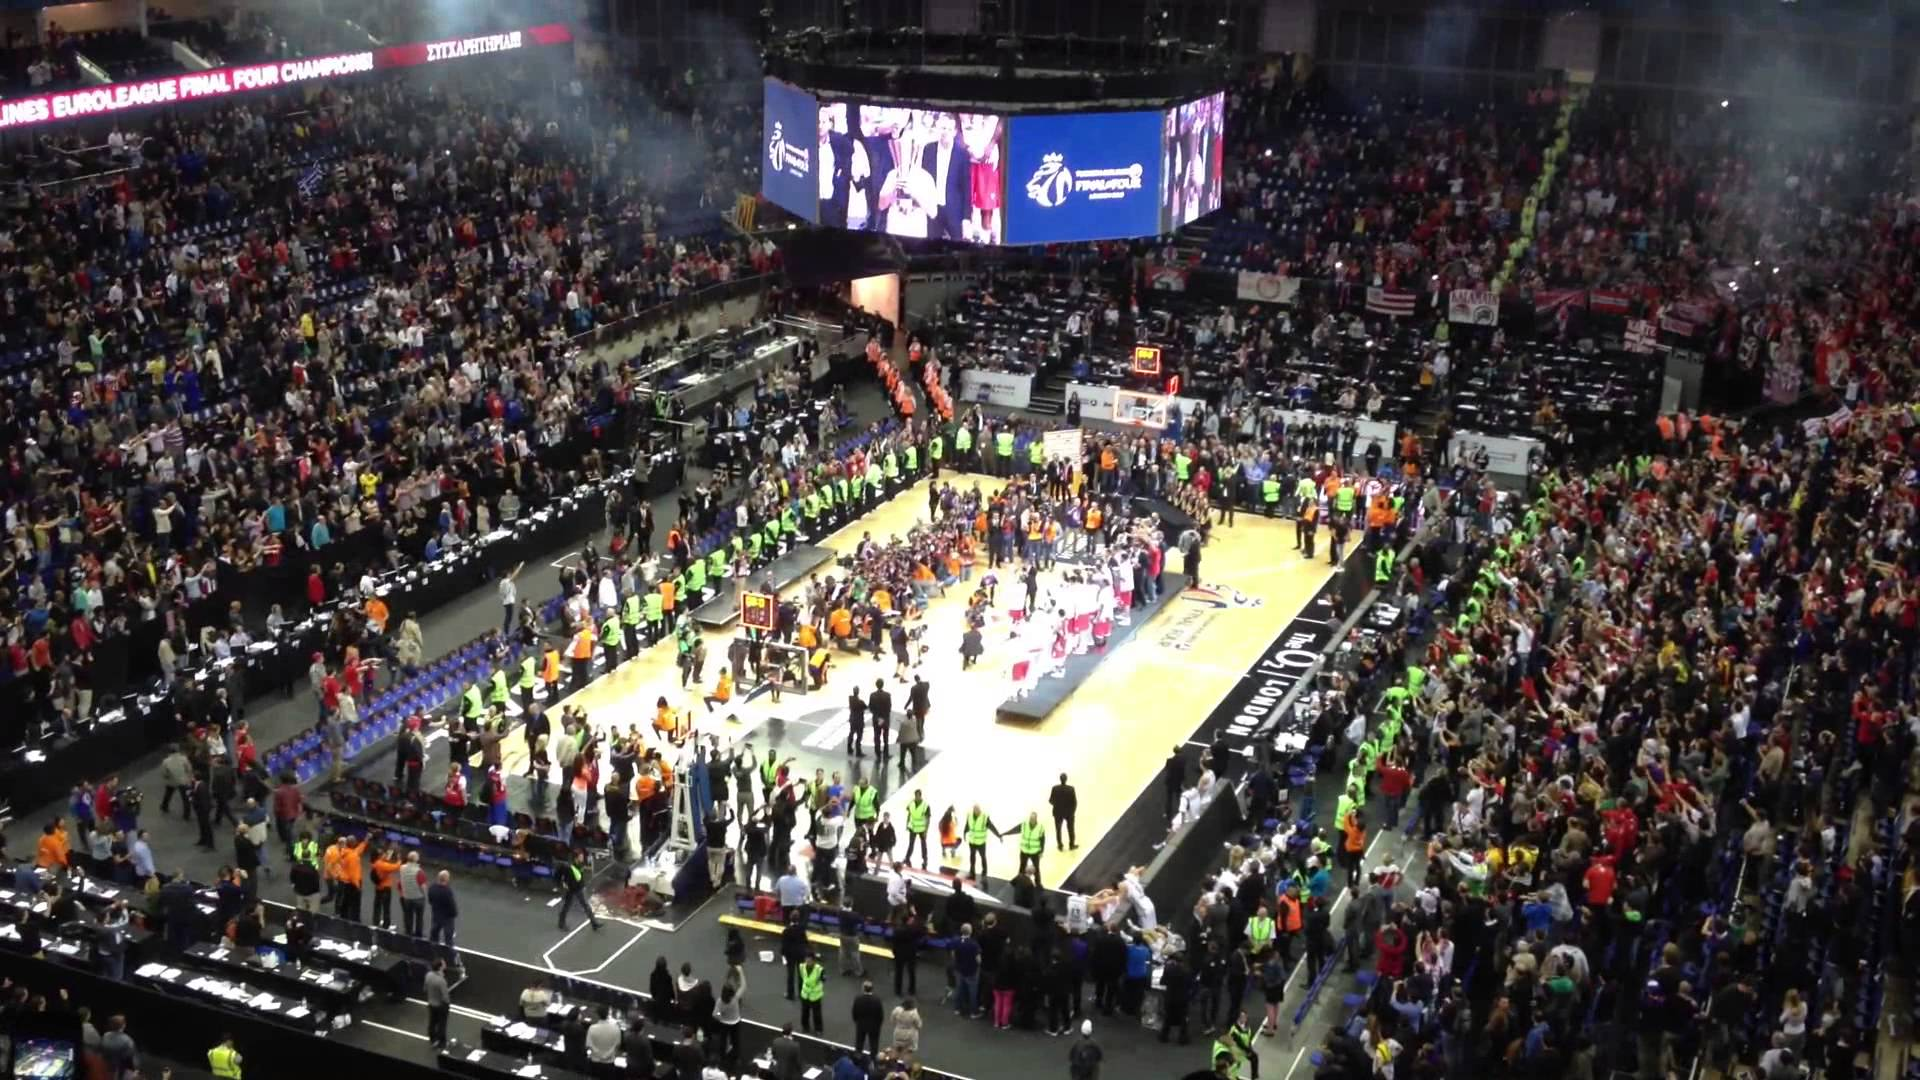 Euroleague Basketball Arena